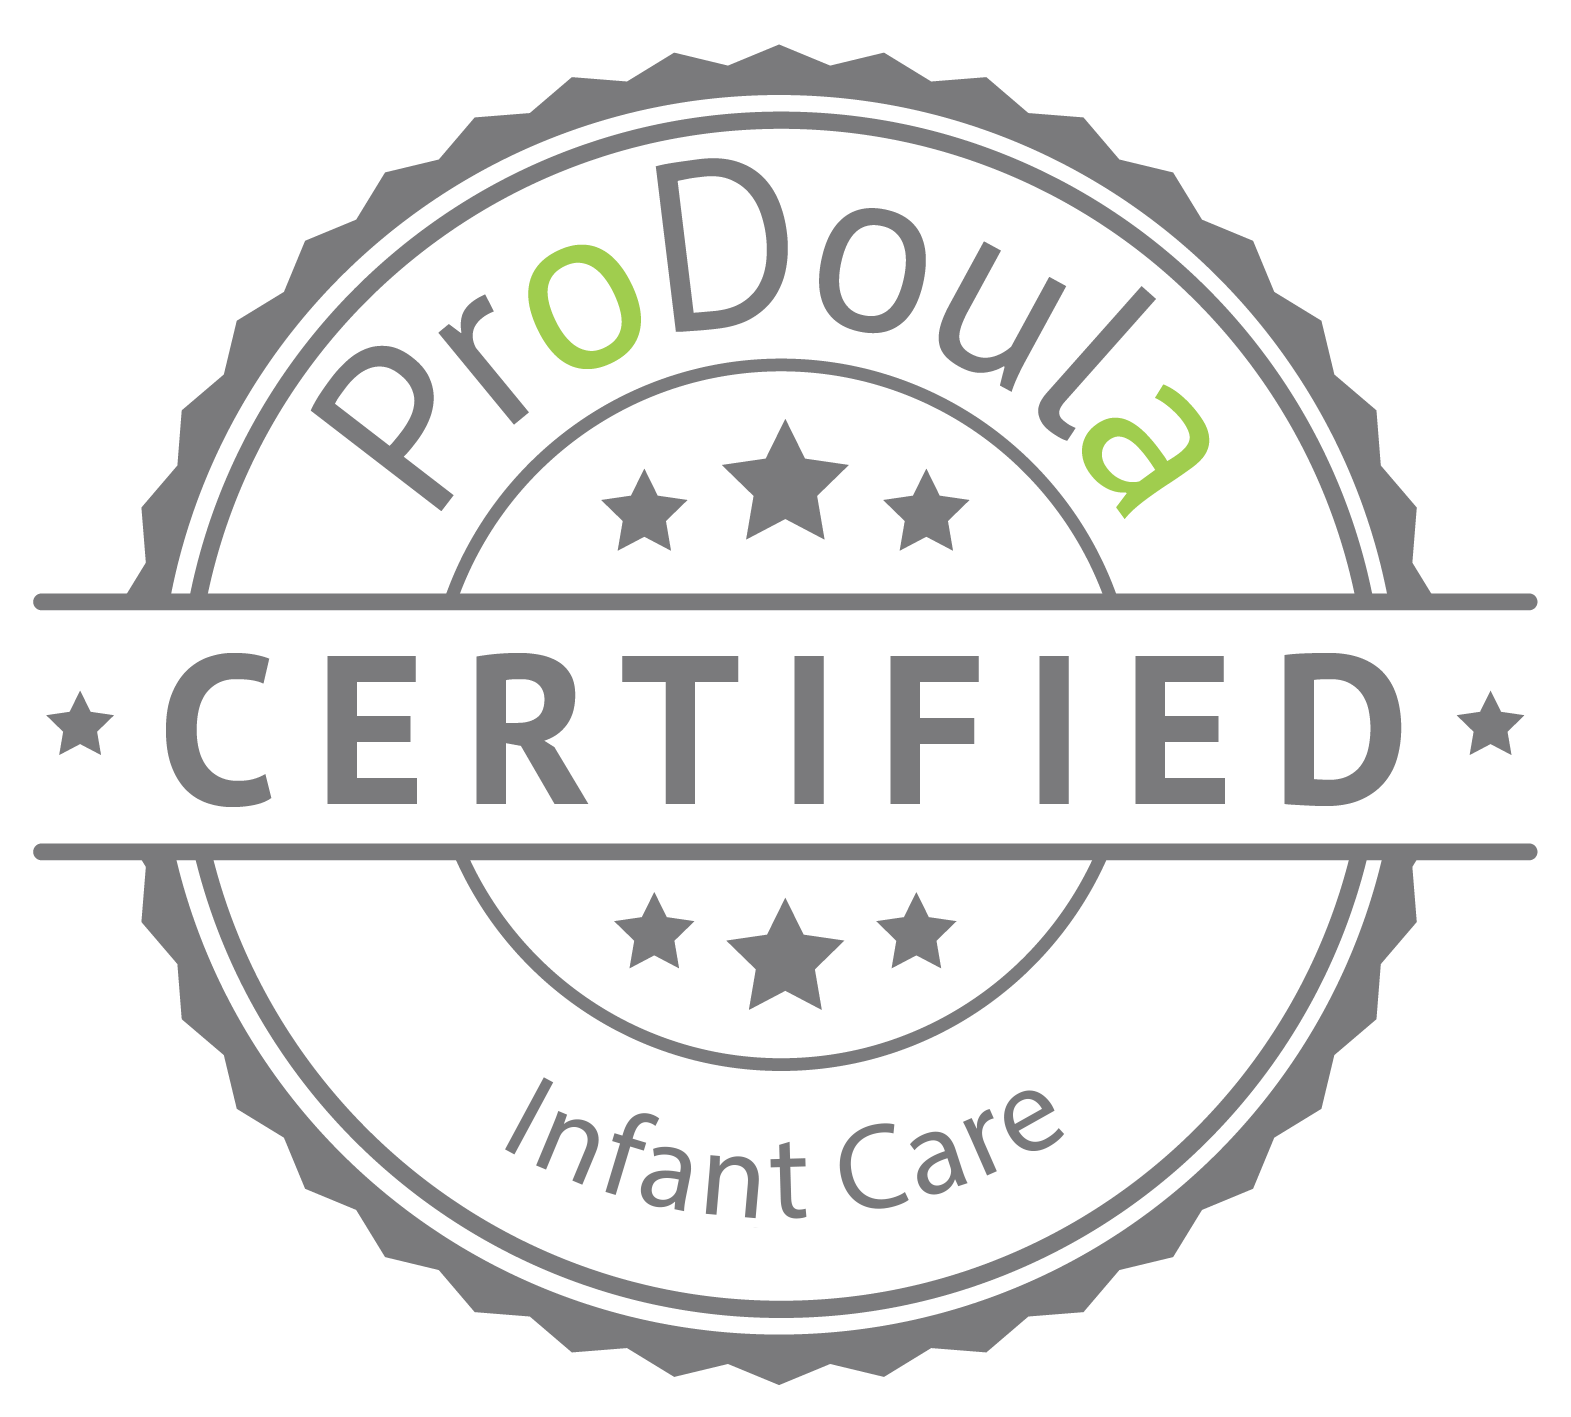 ProDoula Infant Care Certified Badge